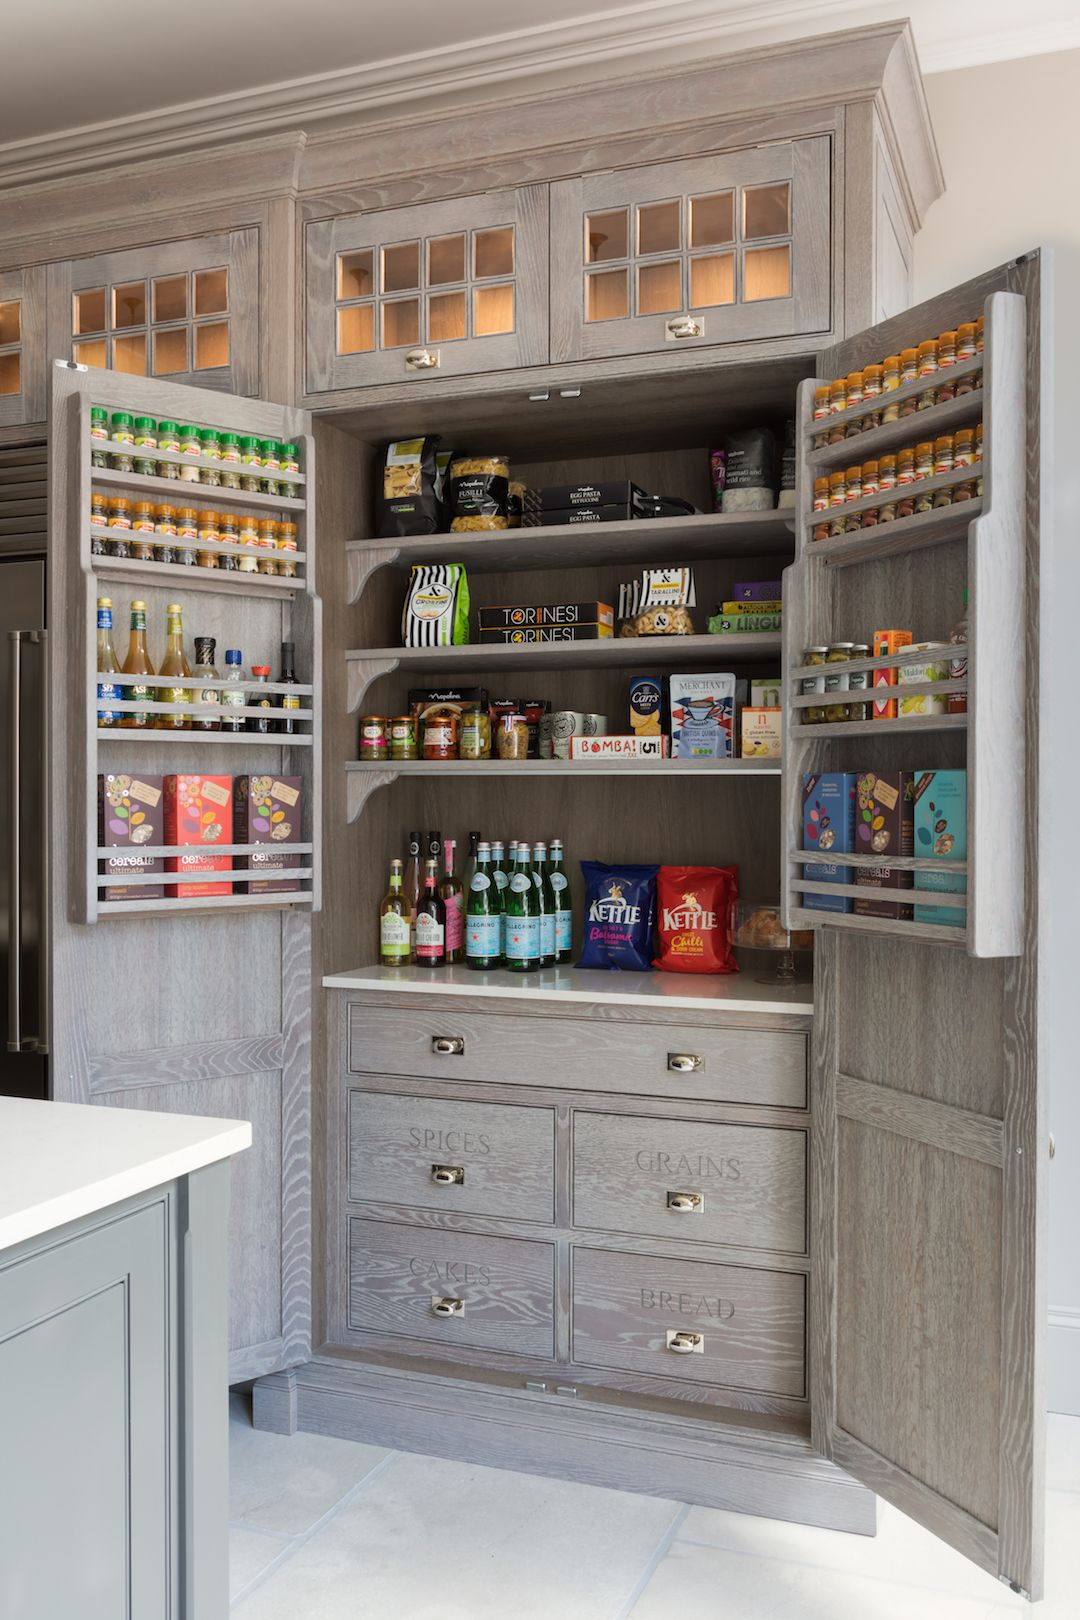 The Day Pantry In The St Albans Showroom Has Been Finished In Smithfield Oak And Has Spice Racks Shel Kitchen Remodel Small Kitchen Renovation Kitchen Design